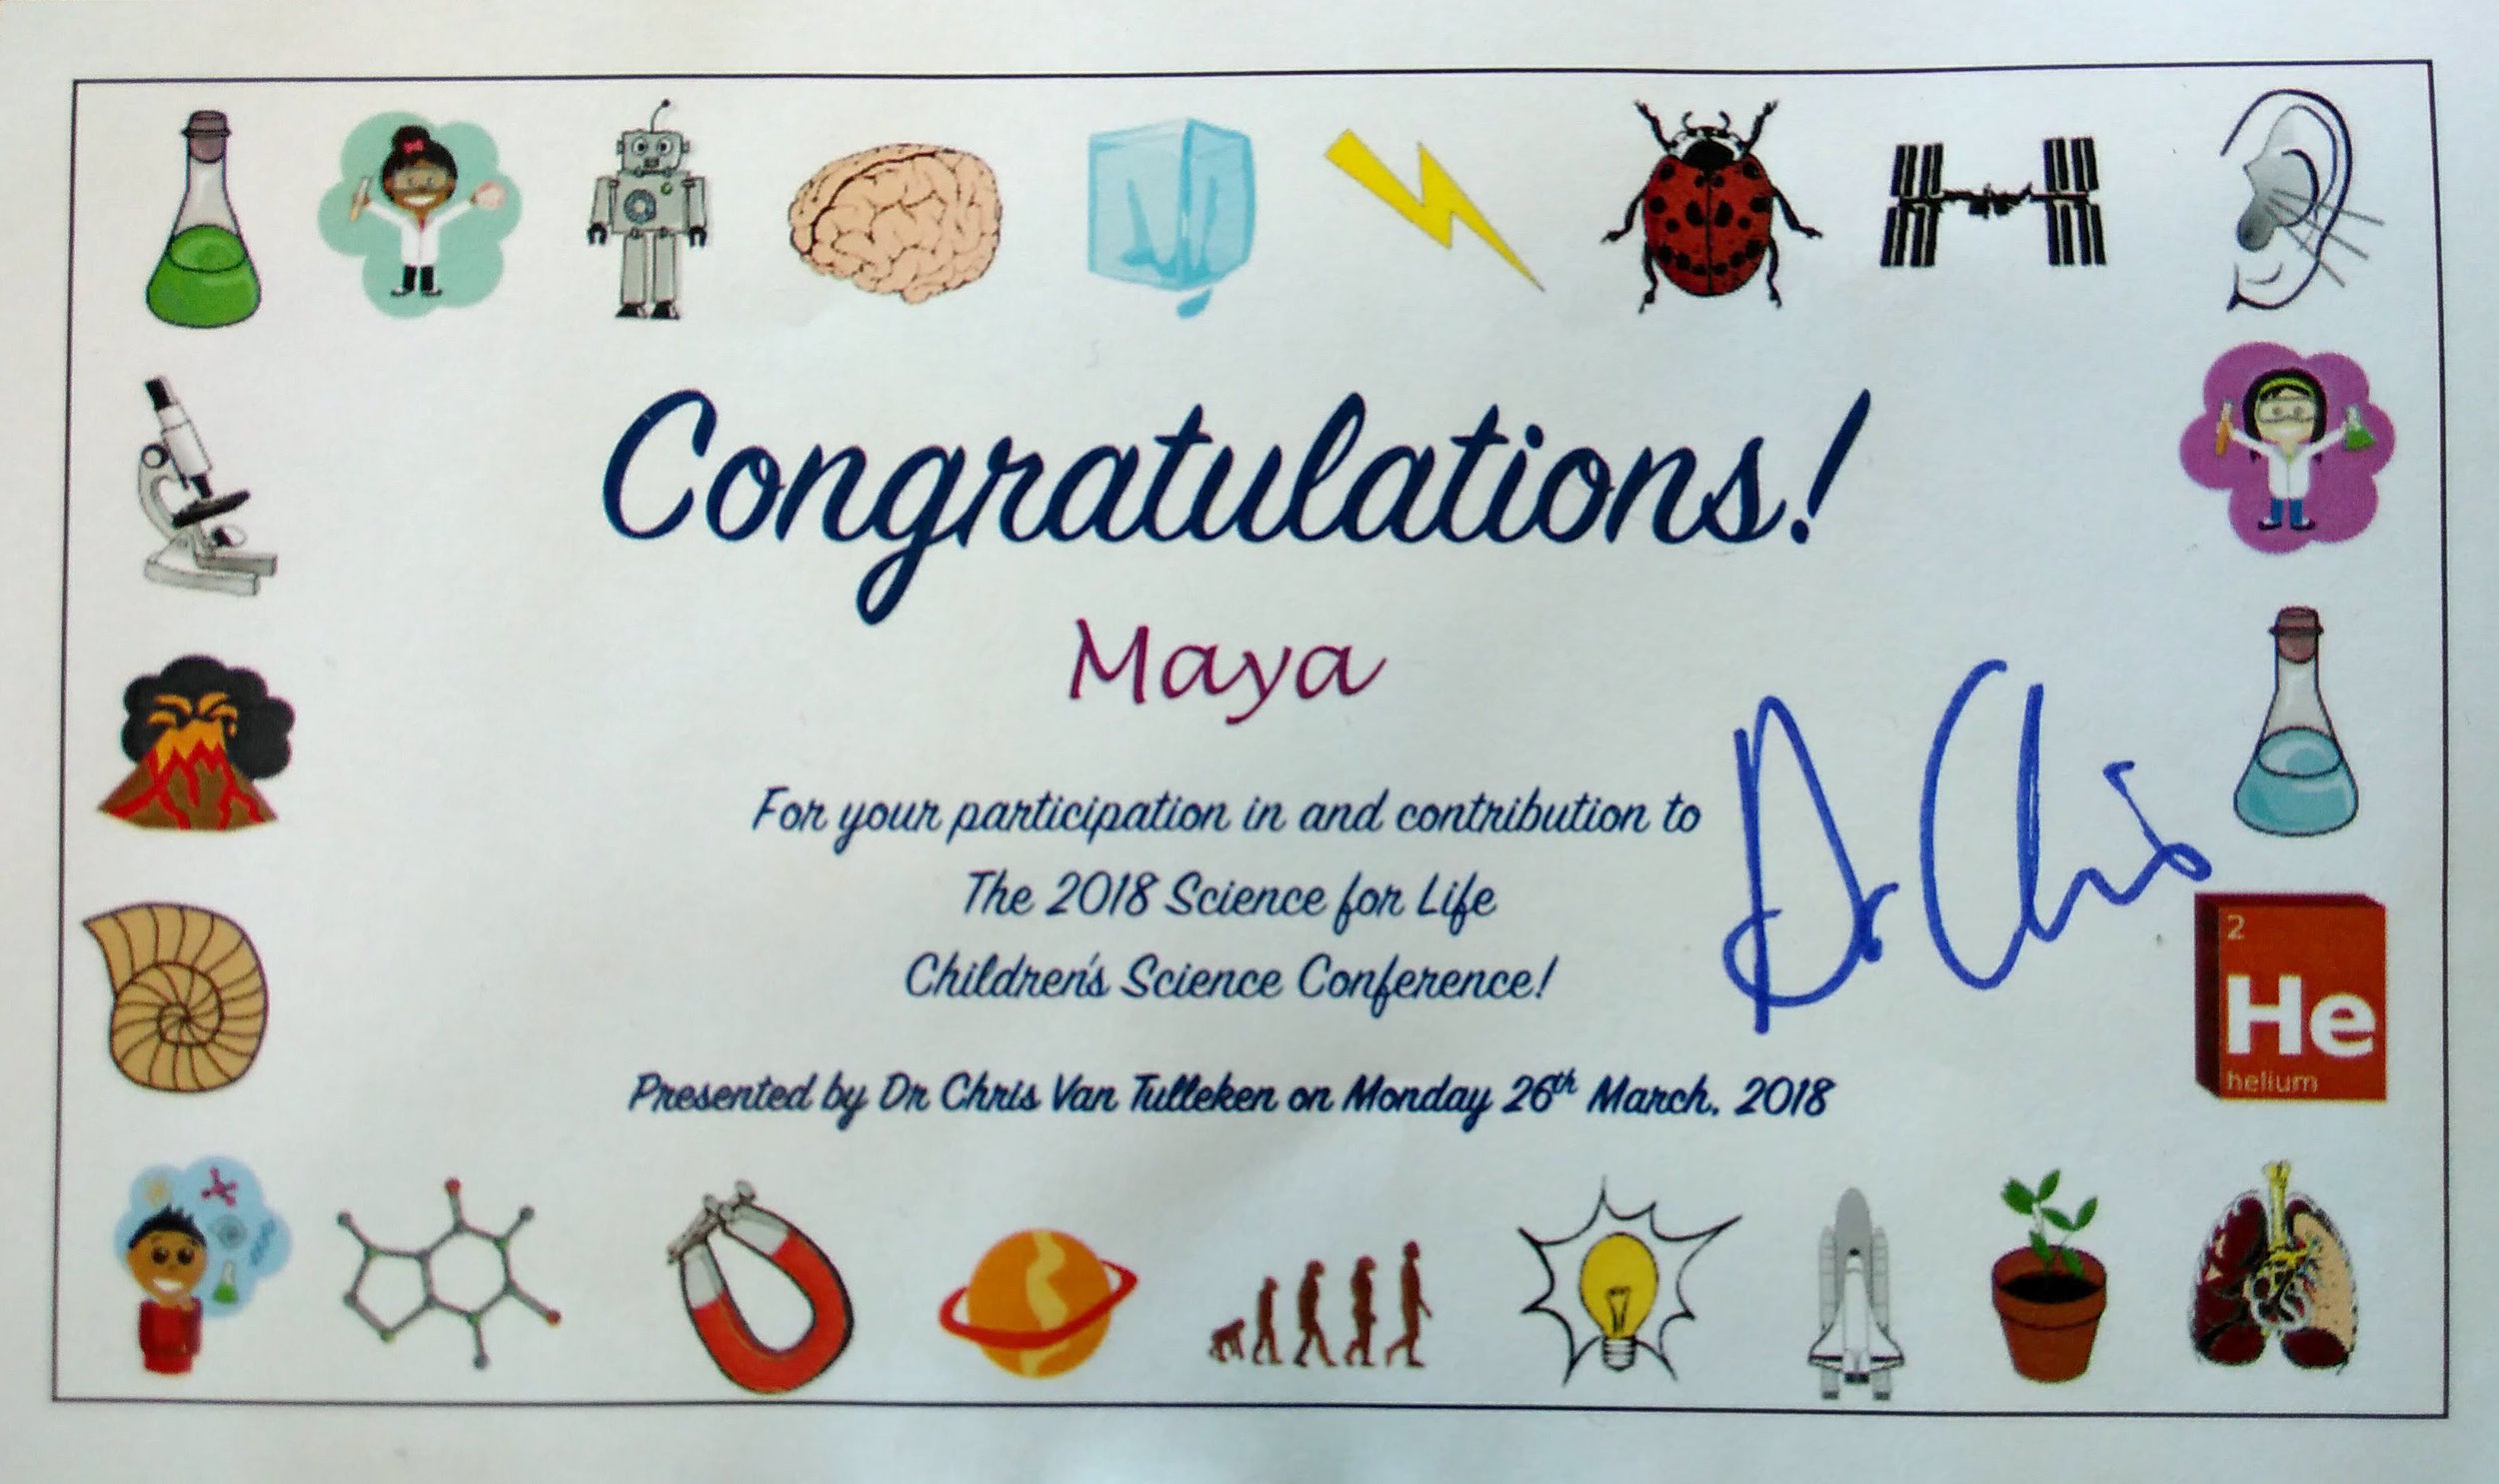 We were all given certificates, which Dr Chris signed